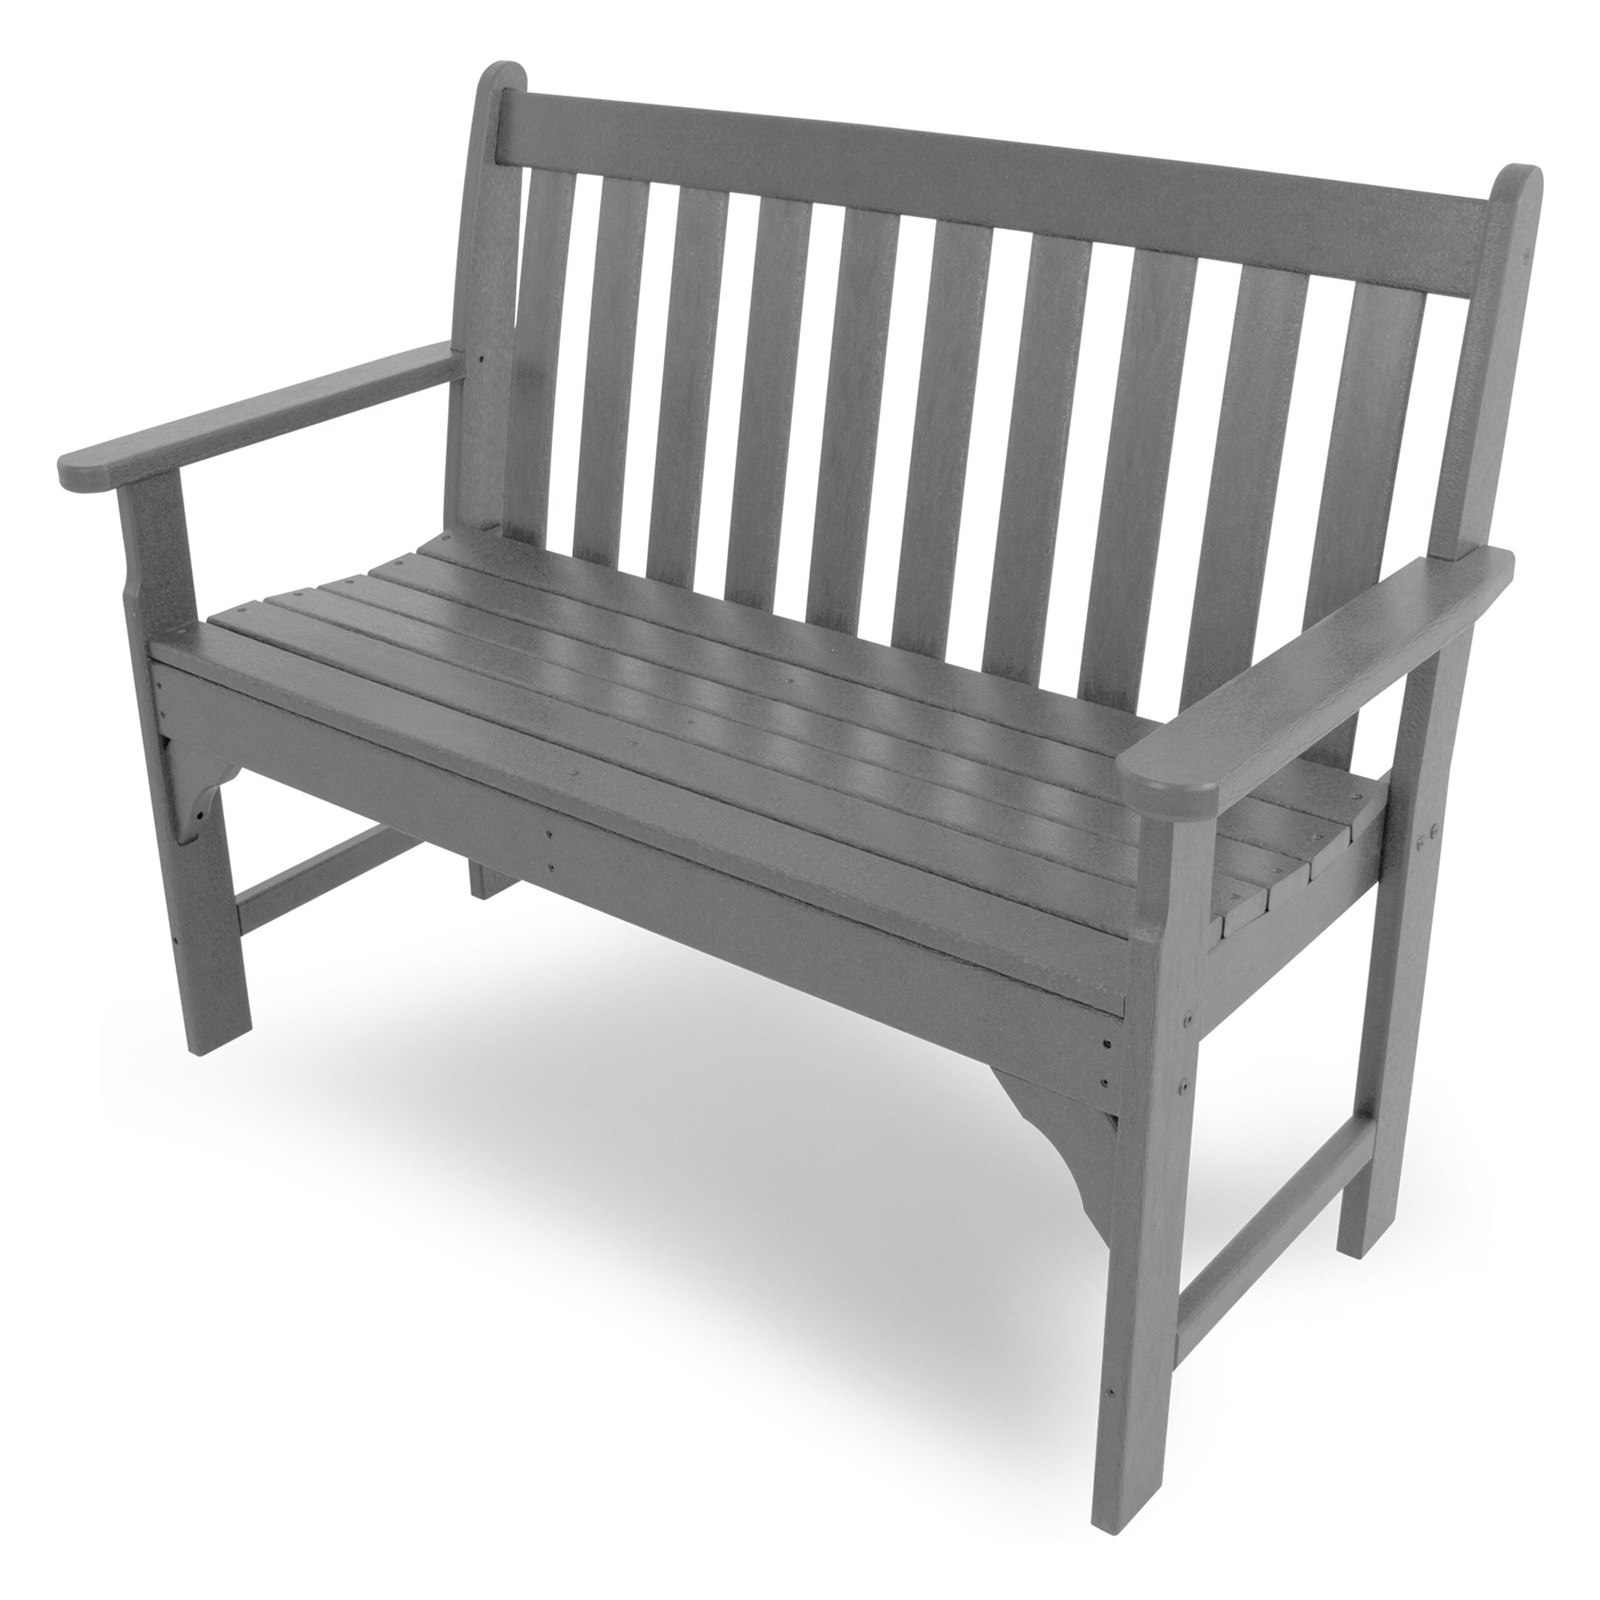 dale garden outdoor dalebench plastic s product hires front in furniture bench tdp recycled black